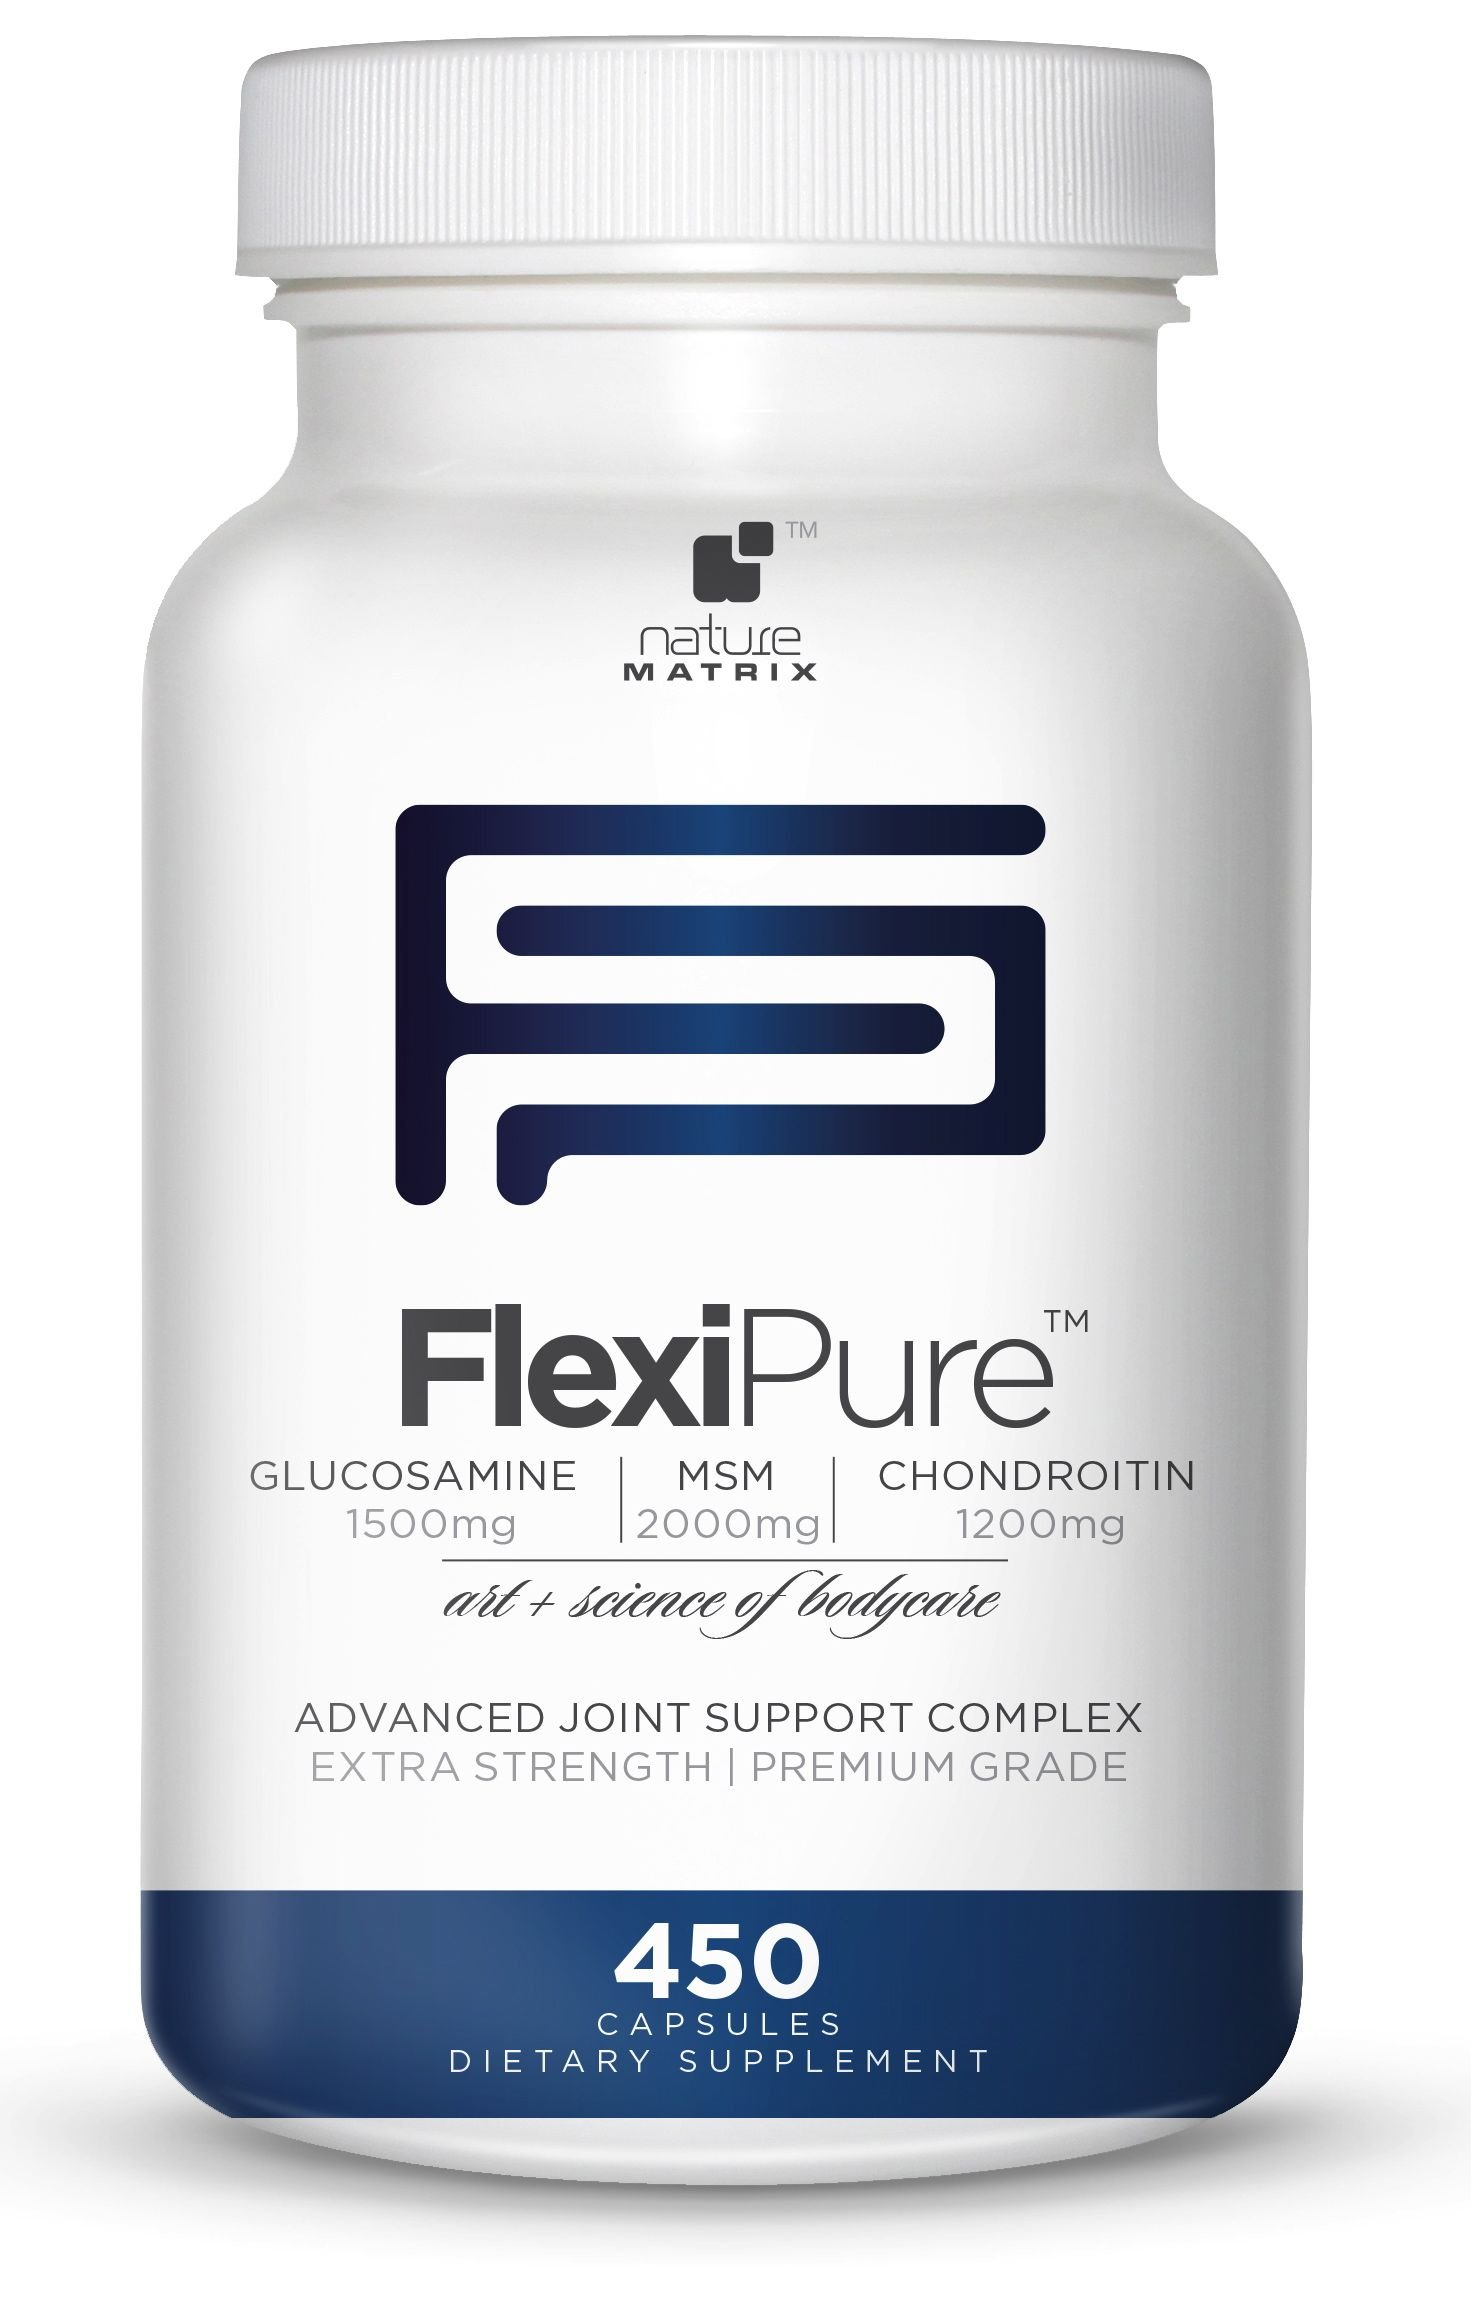 TRIPLE STRENGTH GLUCOSAMINE Sulfate 1500 mg - CHONDROITIN Sulfate 1200 mg - MSM 2000 mg PER SERVING- 450 Capsules Per Bottle- FlexiPure Advanced Joint Support Helps With ARTHRITIS PAIN, Supports HEALTHY And FLEXIBLE Joints and Connective Tissue.